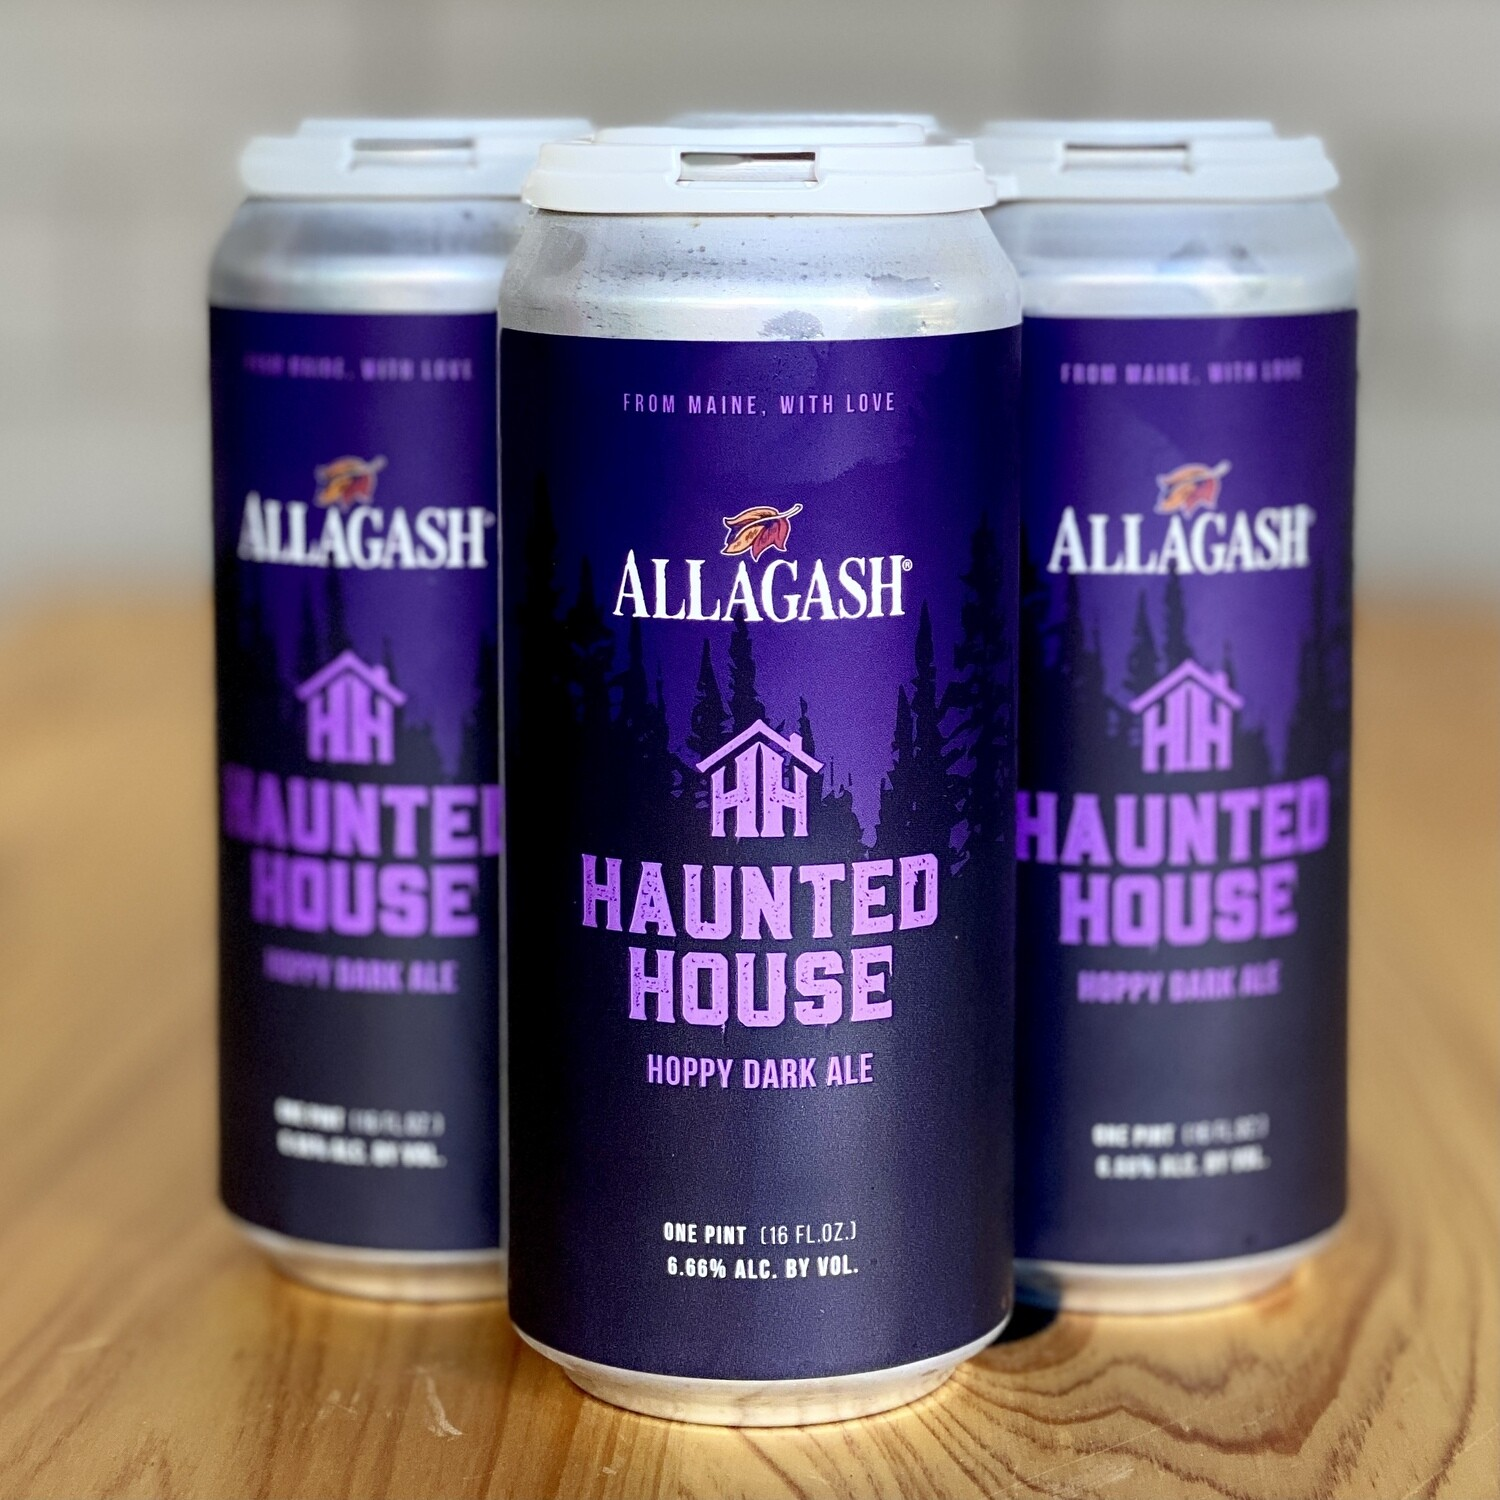 Allagash Haunted House (4pk)